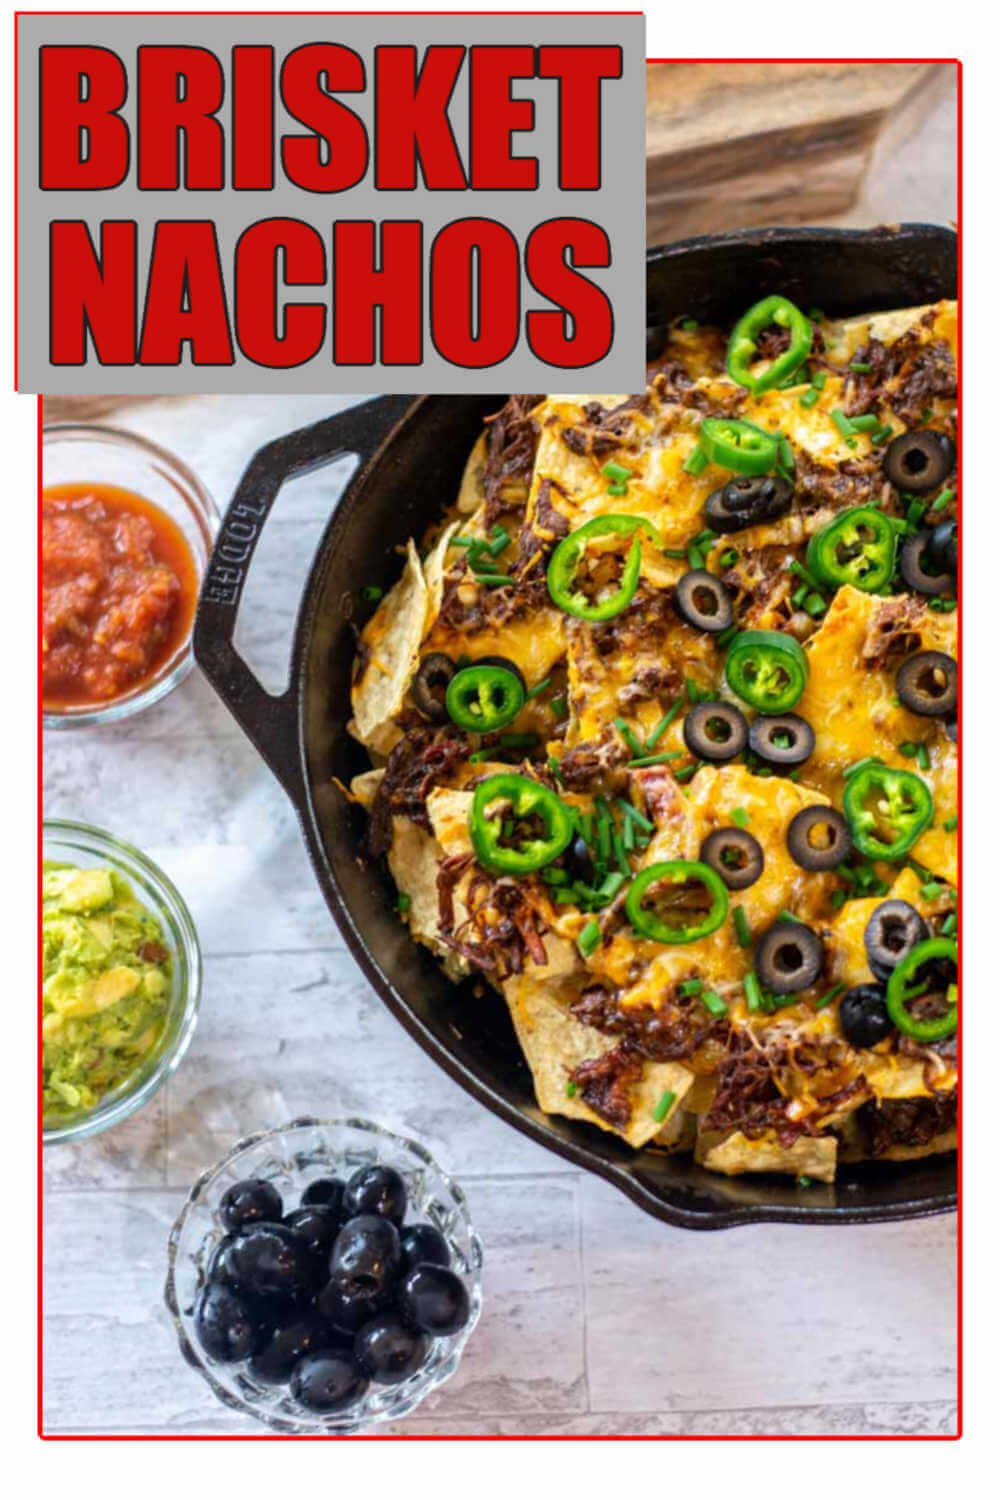 Brisket Nachos - Easy and Delicious Cast Iron Skillet Recipe